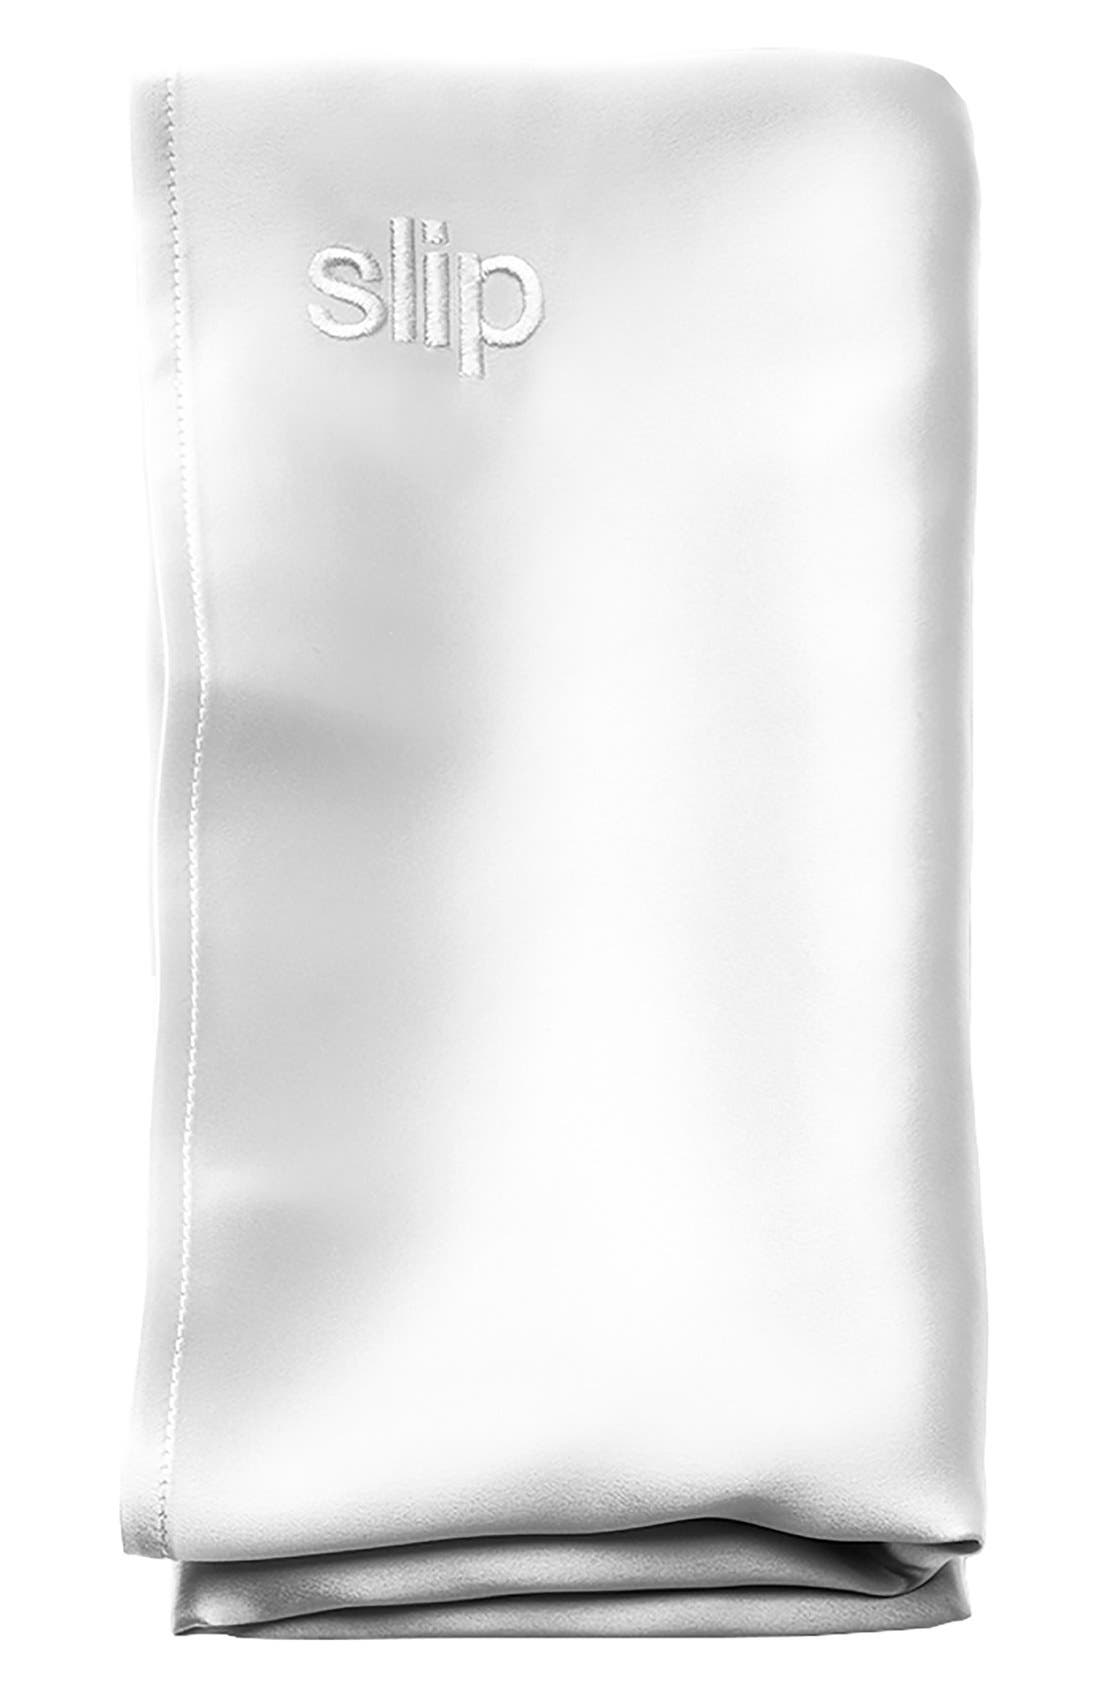 slip™ for beauty sleep 'Slipsilk™' Pure Silk Pillowcase